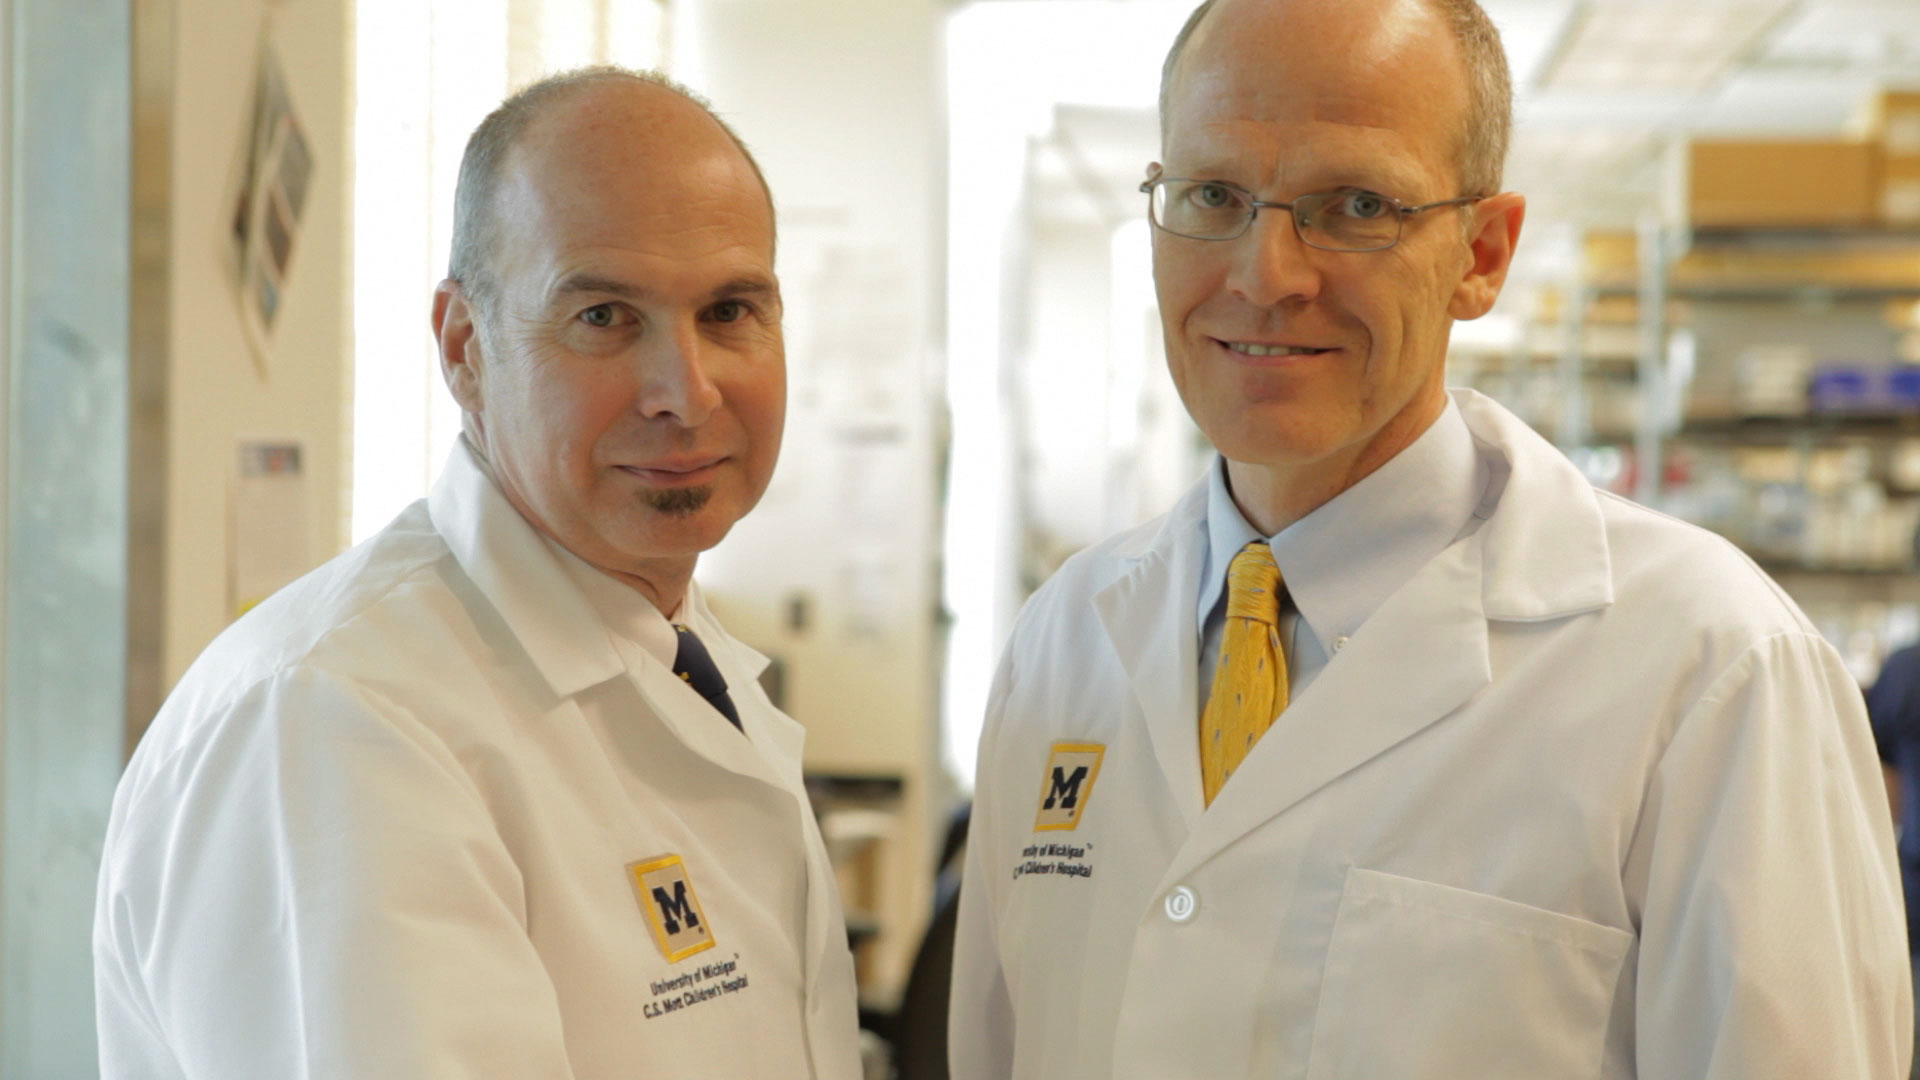 Scott Hollister, Ph.D., is at left, Glenn Green, M.D., is at right.